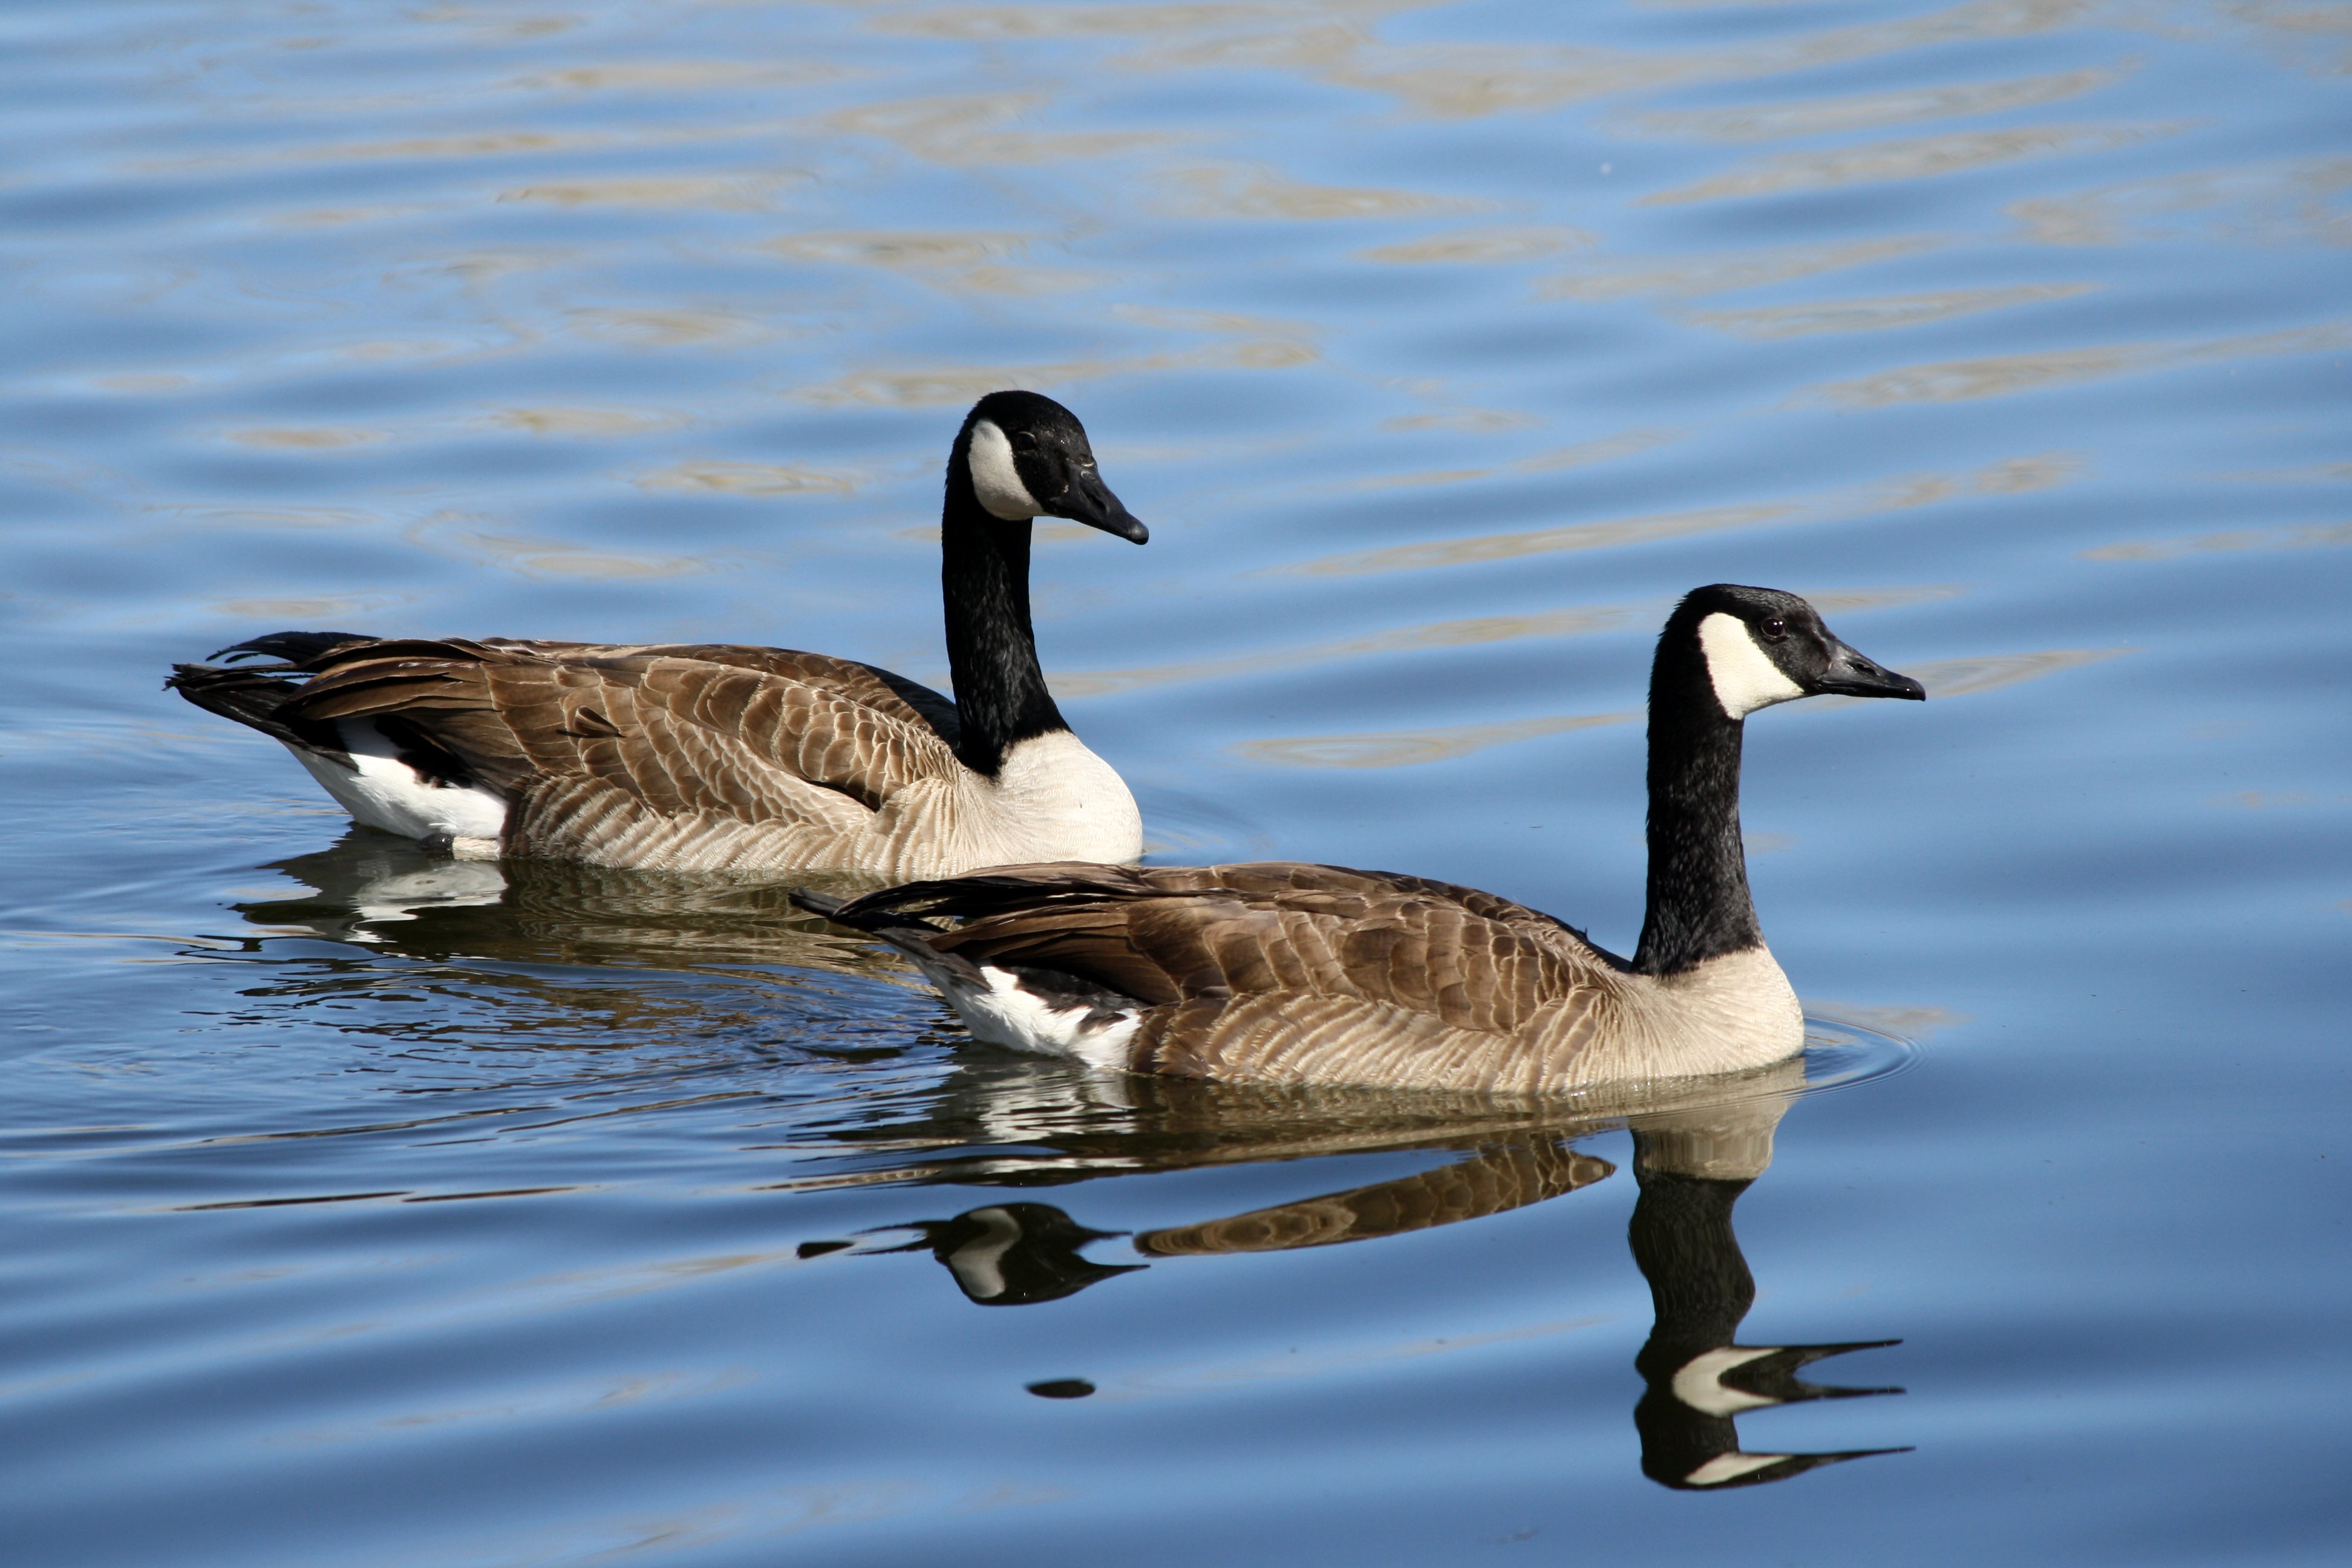 Citizens defend Cosby Lake geese to Clay Council – The Trussville ...